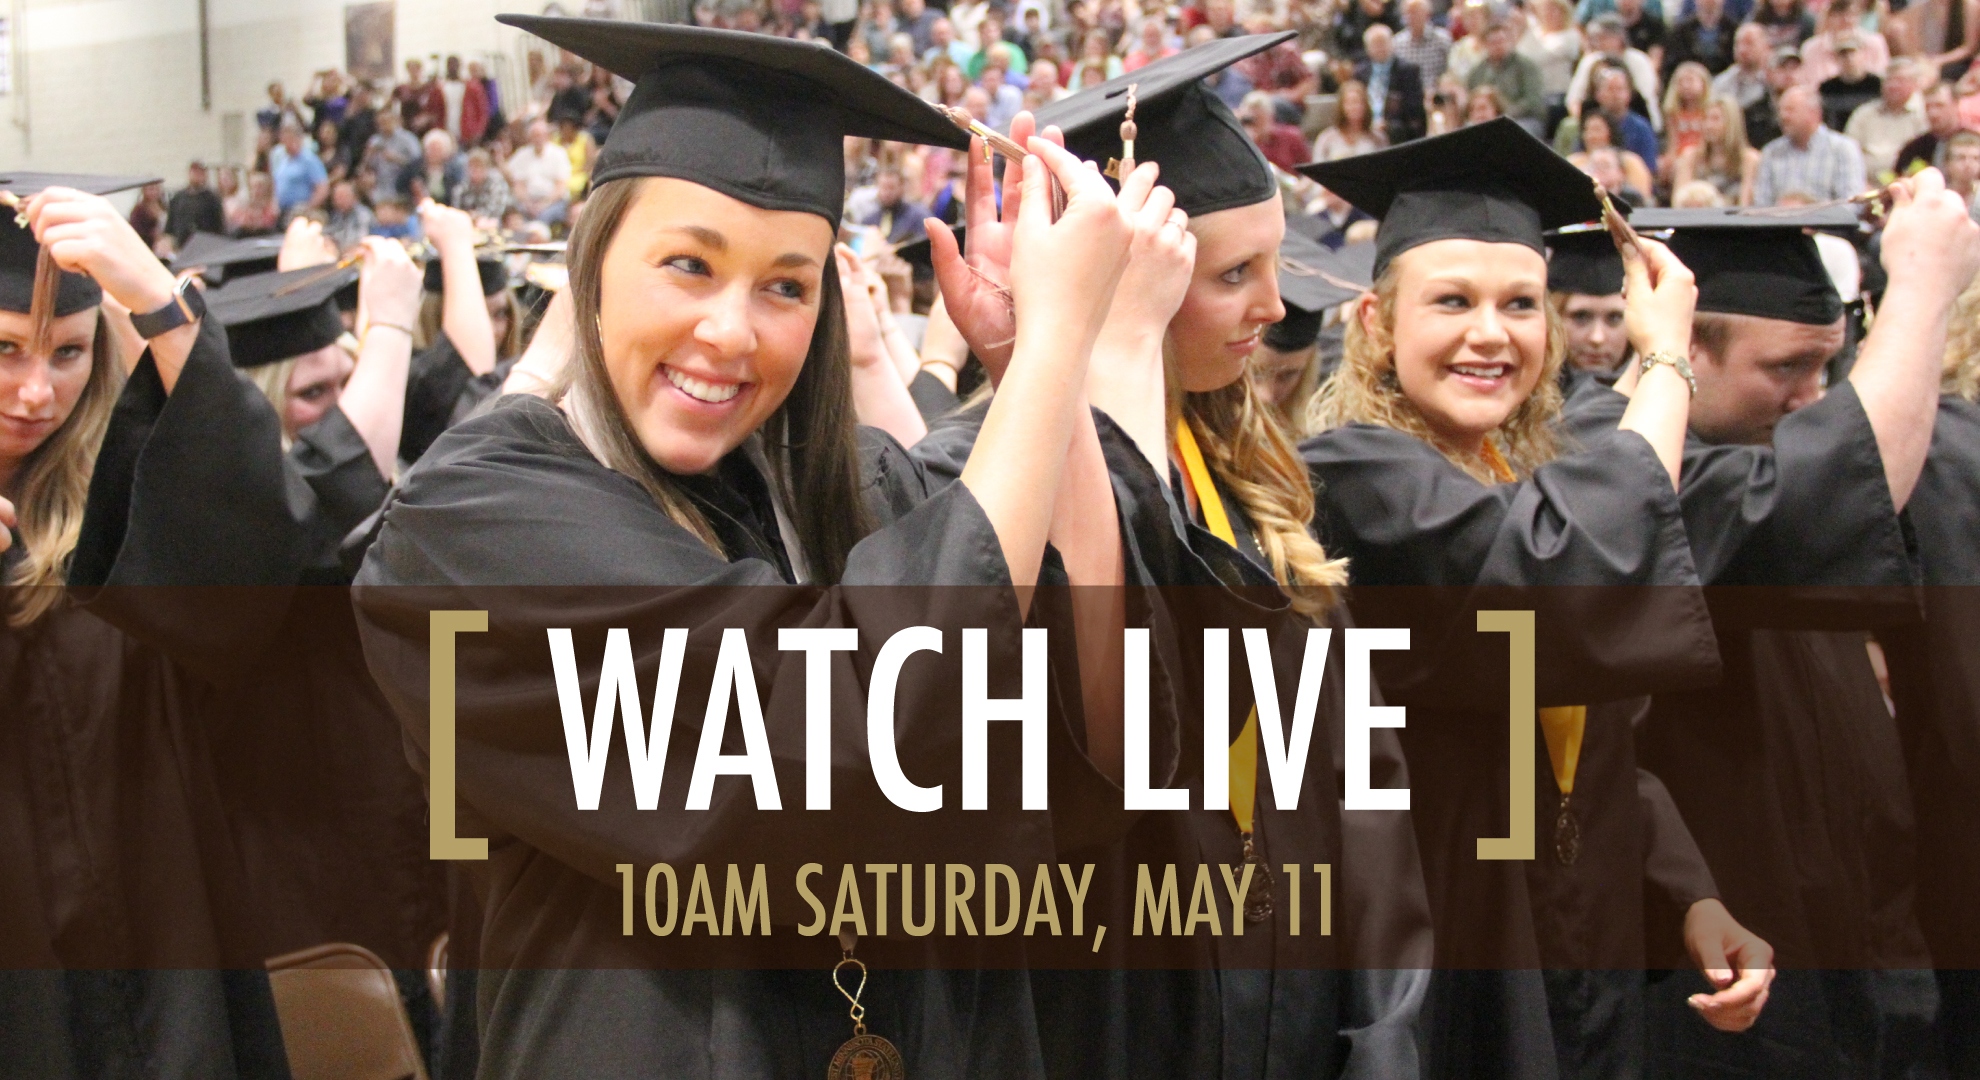 commencement-watchlive_screen.jpg